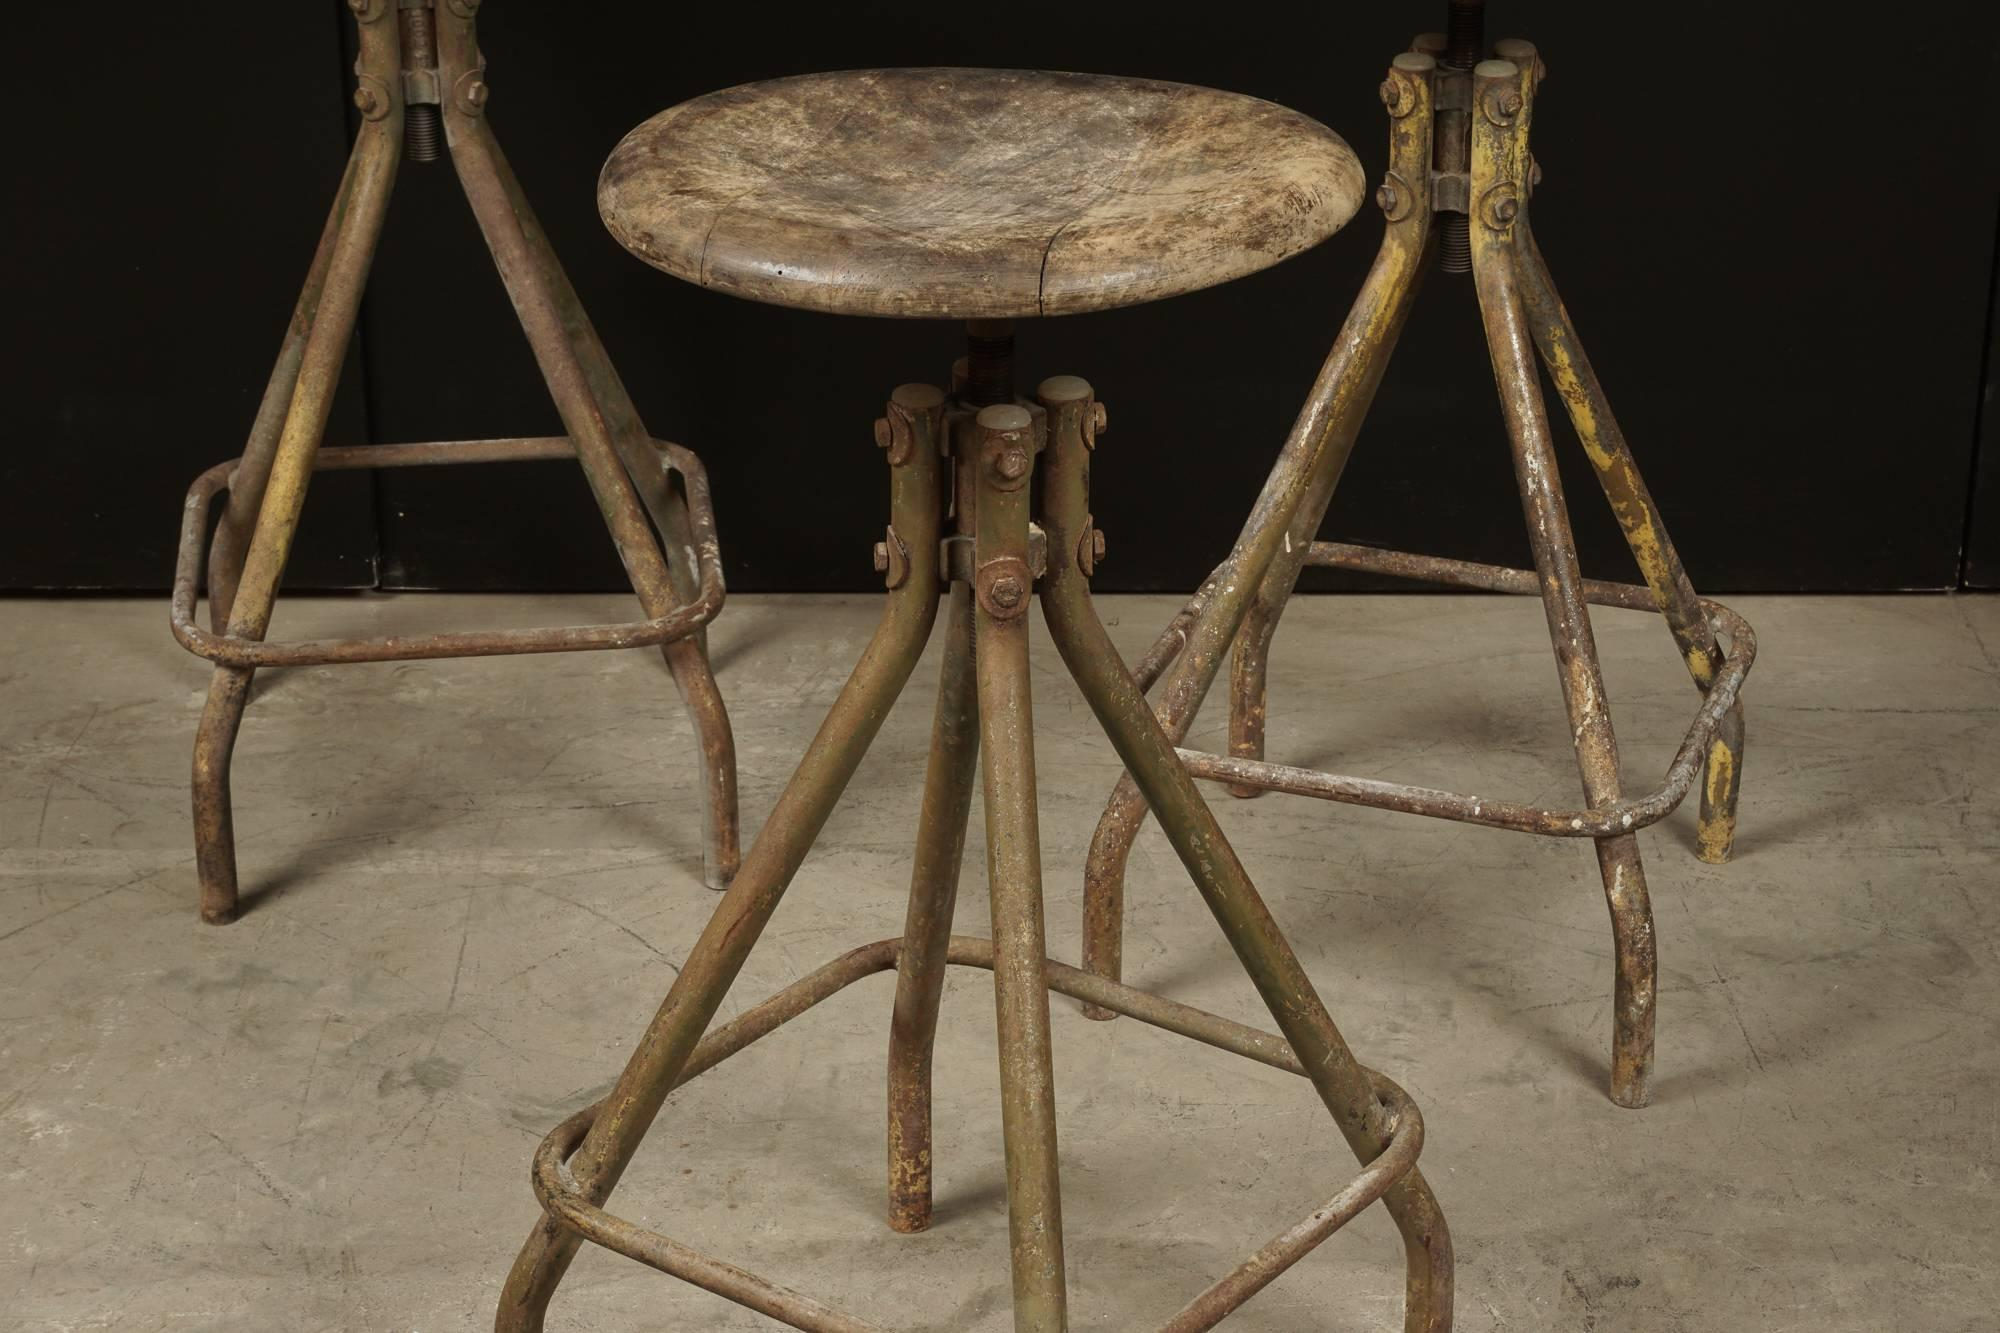 European Set Of Three Industrial Bar Stools From France, Circa 1940 For Sale